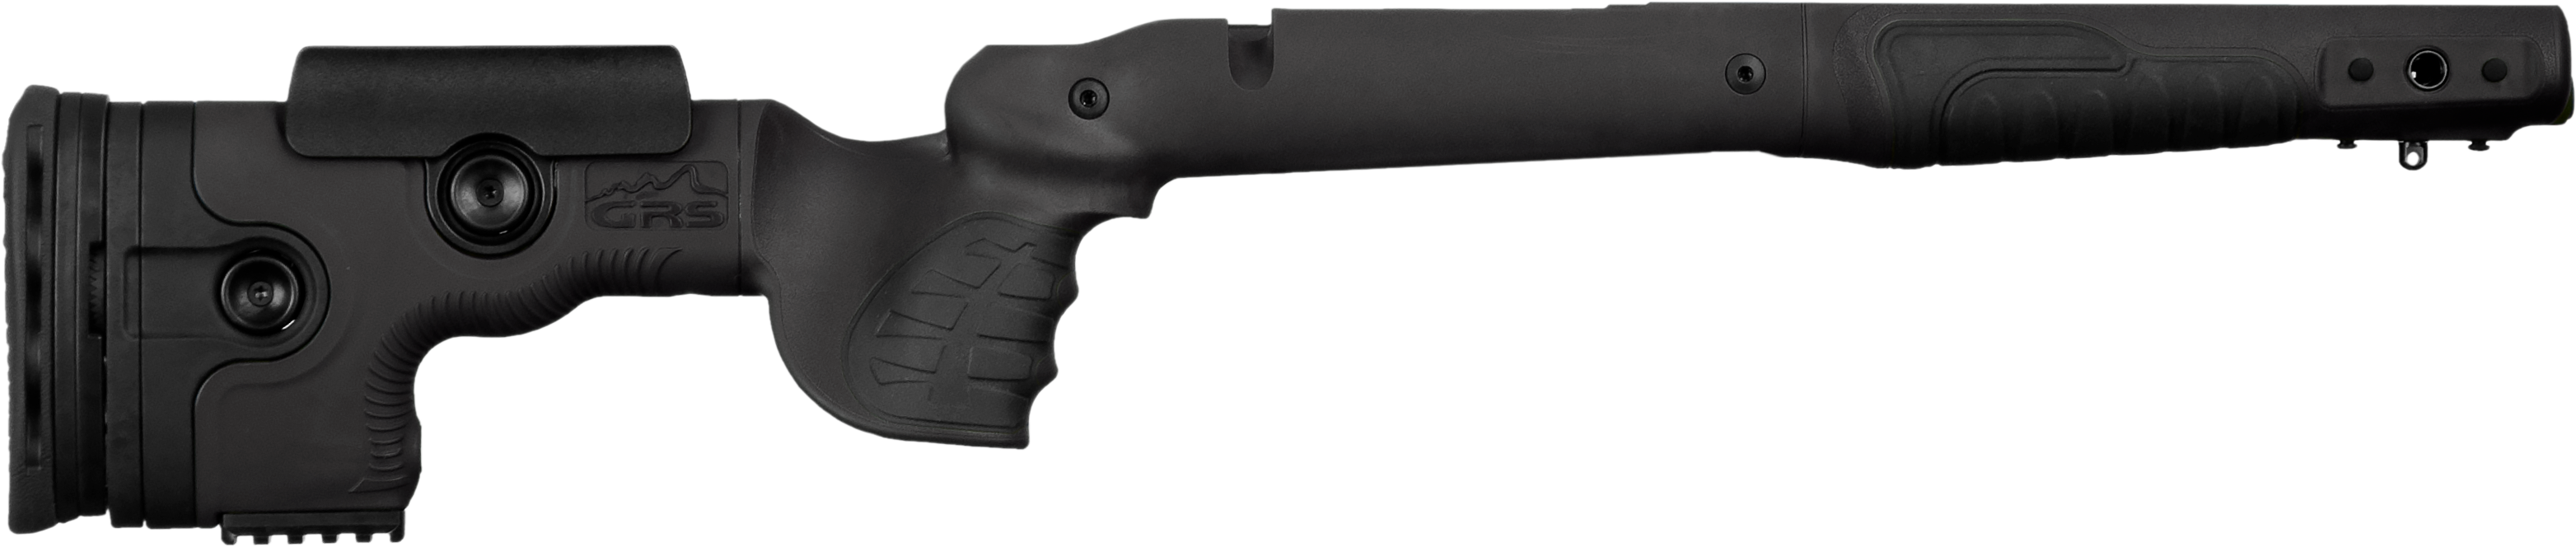 Smart design, many adjustment features, integrated Picatinny Rail mounting systems. GRS Bifrost is the ultimate adjustable rifle stock.